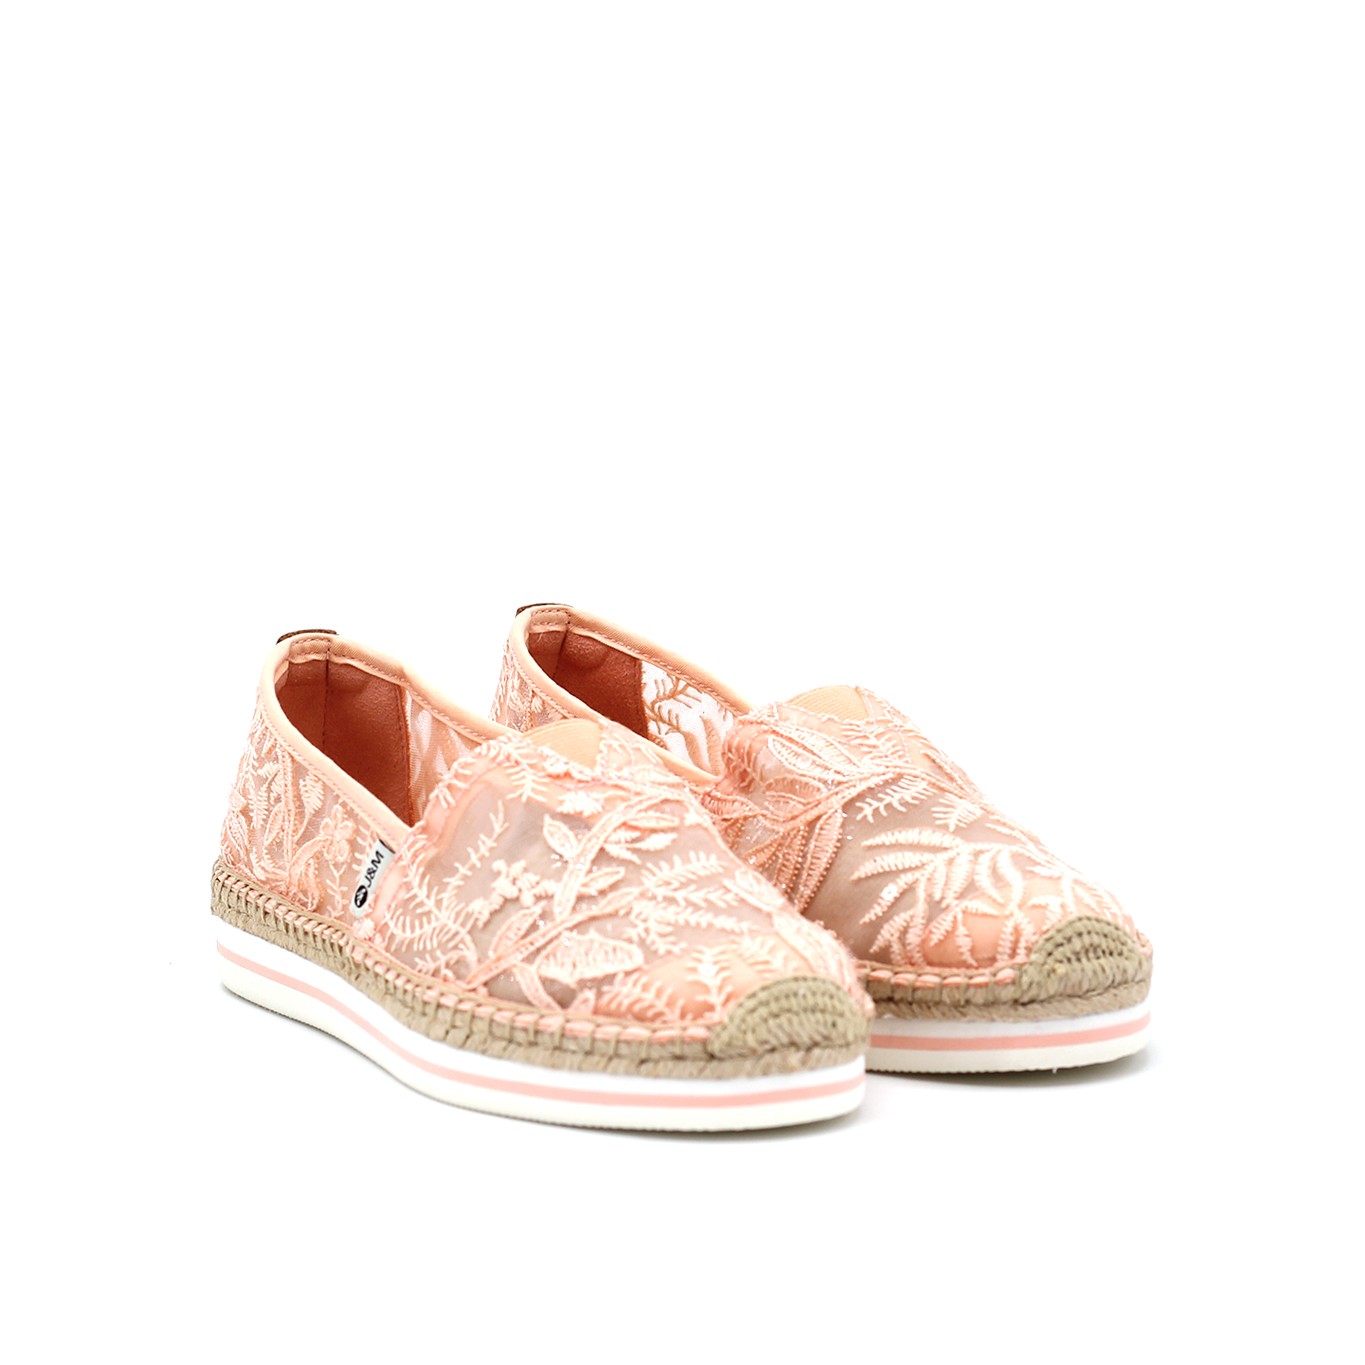 Classic slip-on sporty espadrille with woven jute at sole and toe